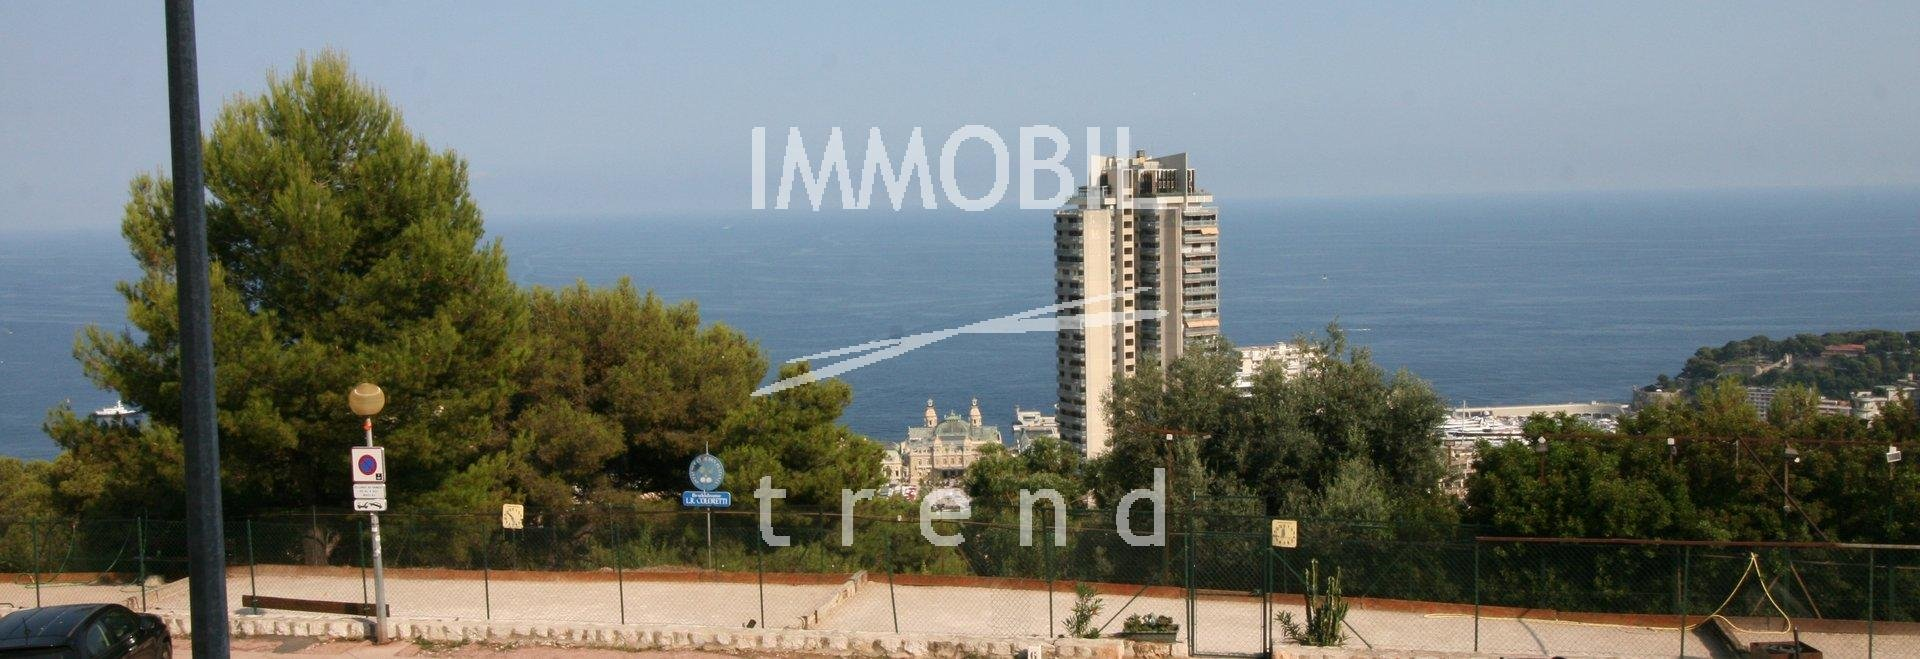 EXCLUSIVITE BEAUSOLEIL MONTECARLO VISTA- APPARTEMENT AVEC UNE TERRASSE DE 90 m2. Parking sous sol.